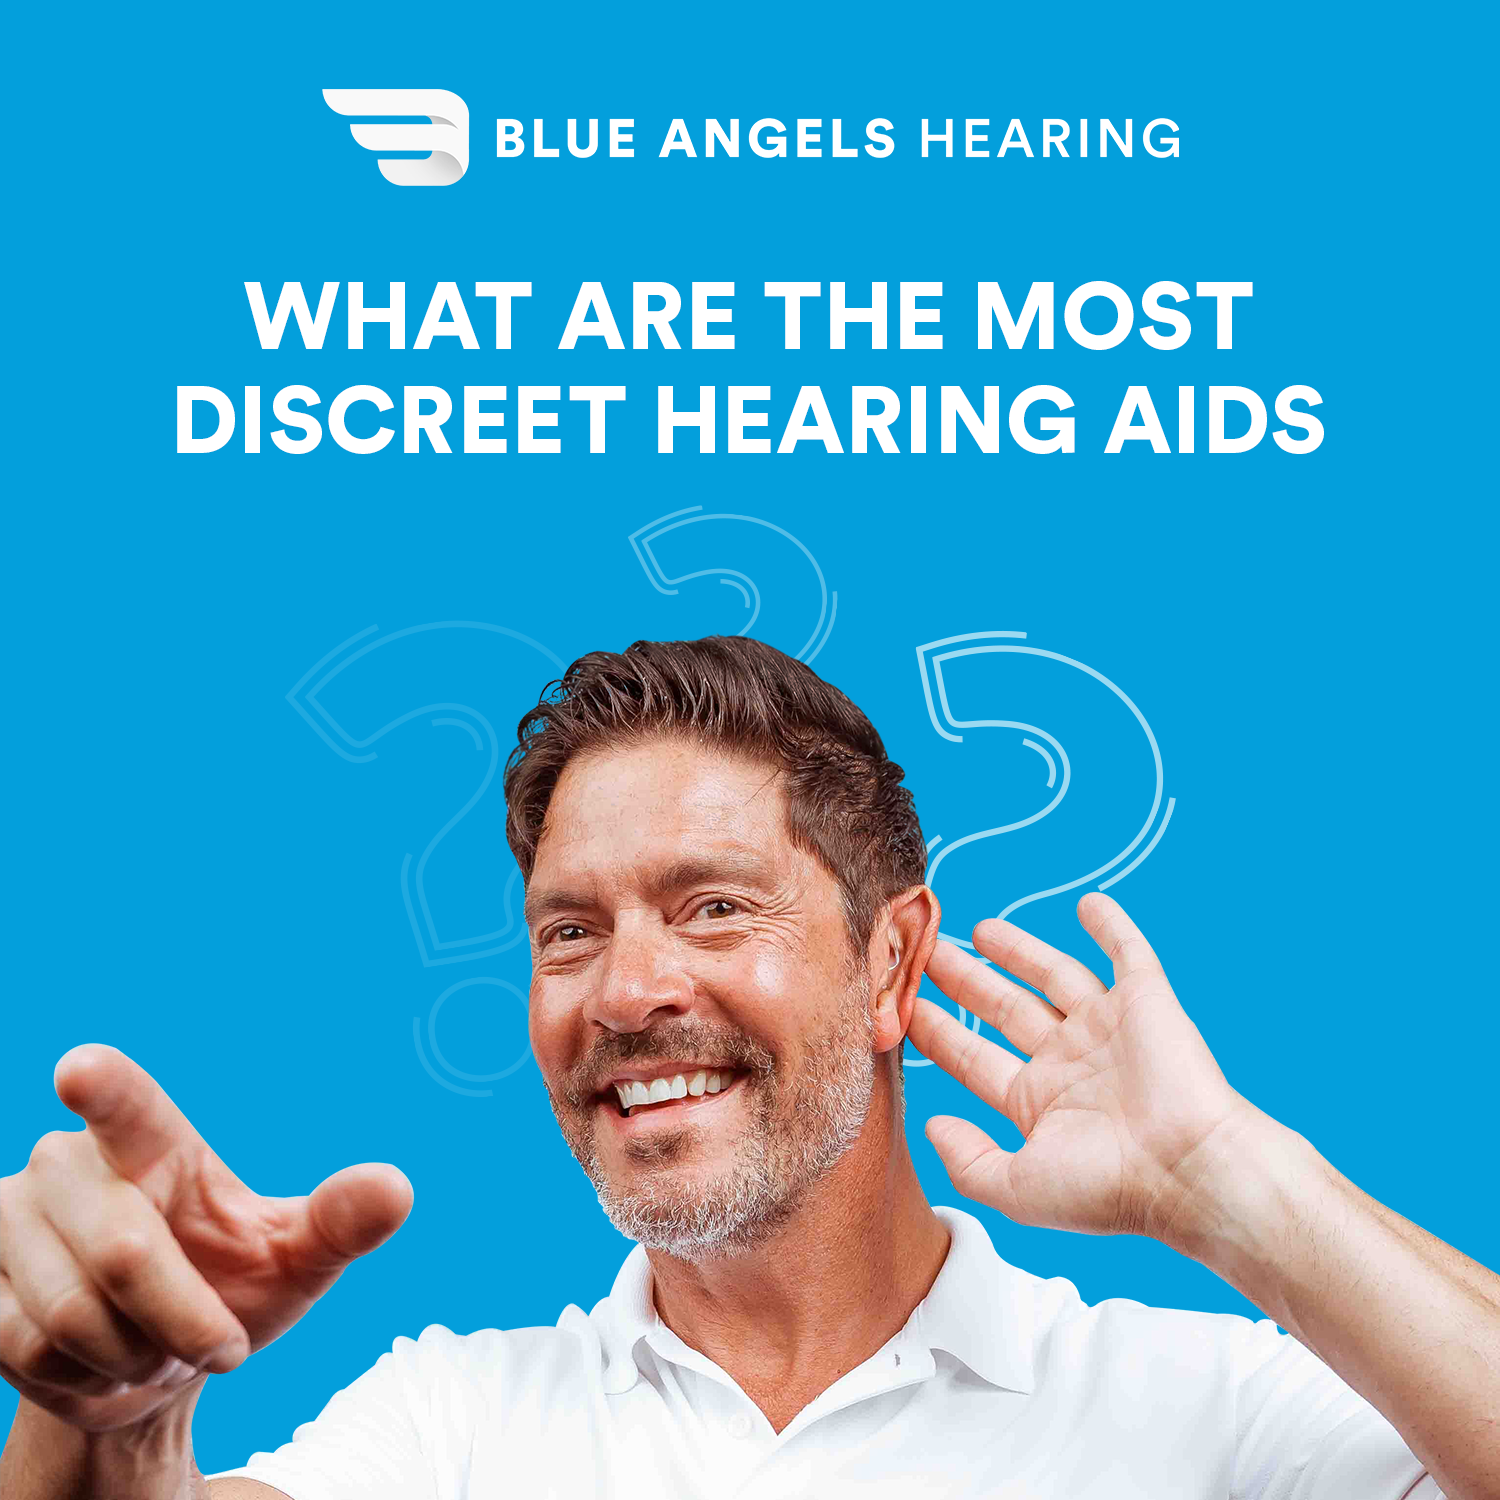 What Are the Most Discreet Hearing Aids?